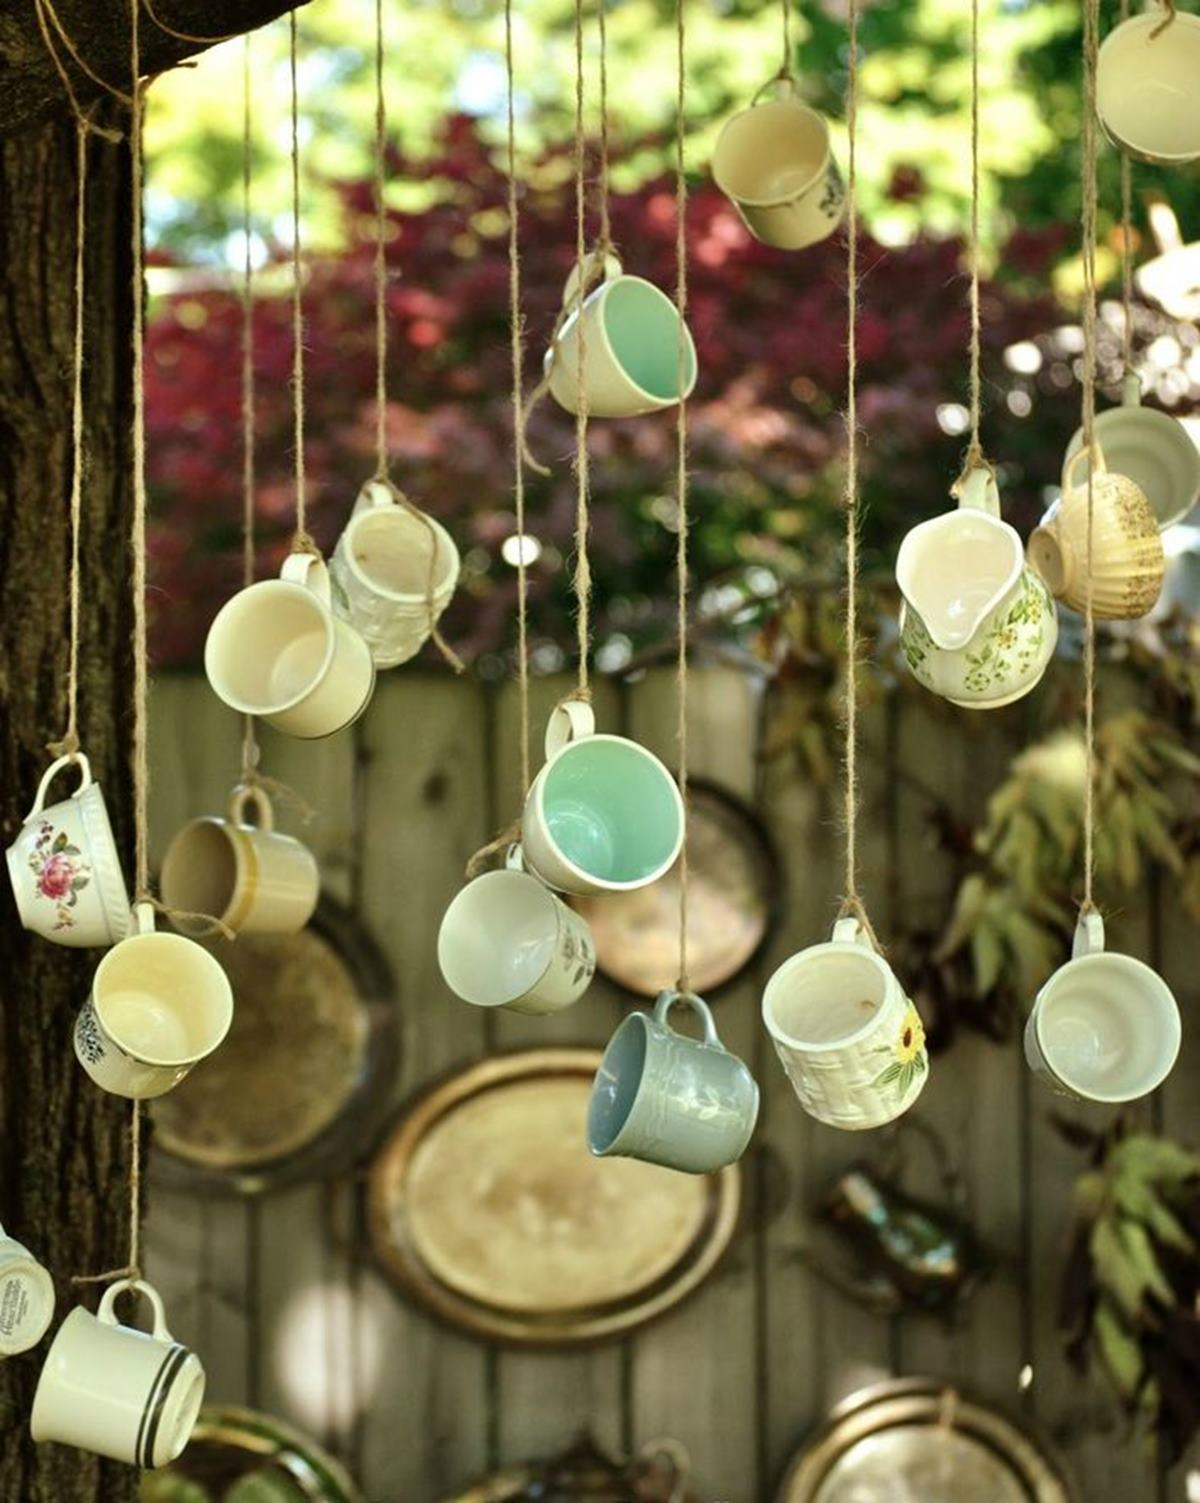 The Secrets Behind a Beautifully Done Vintage Garden Decor